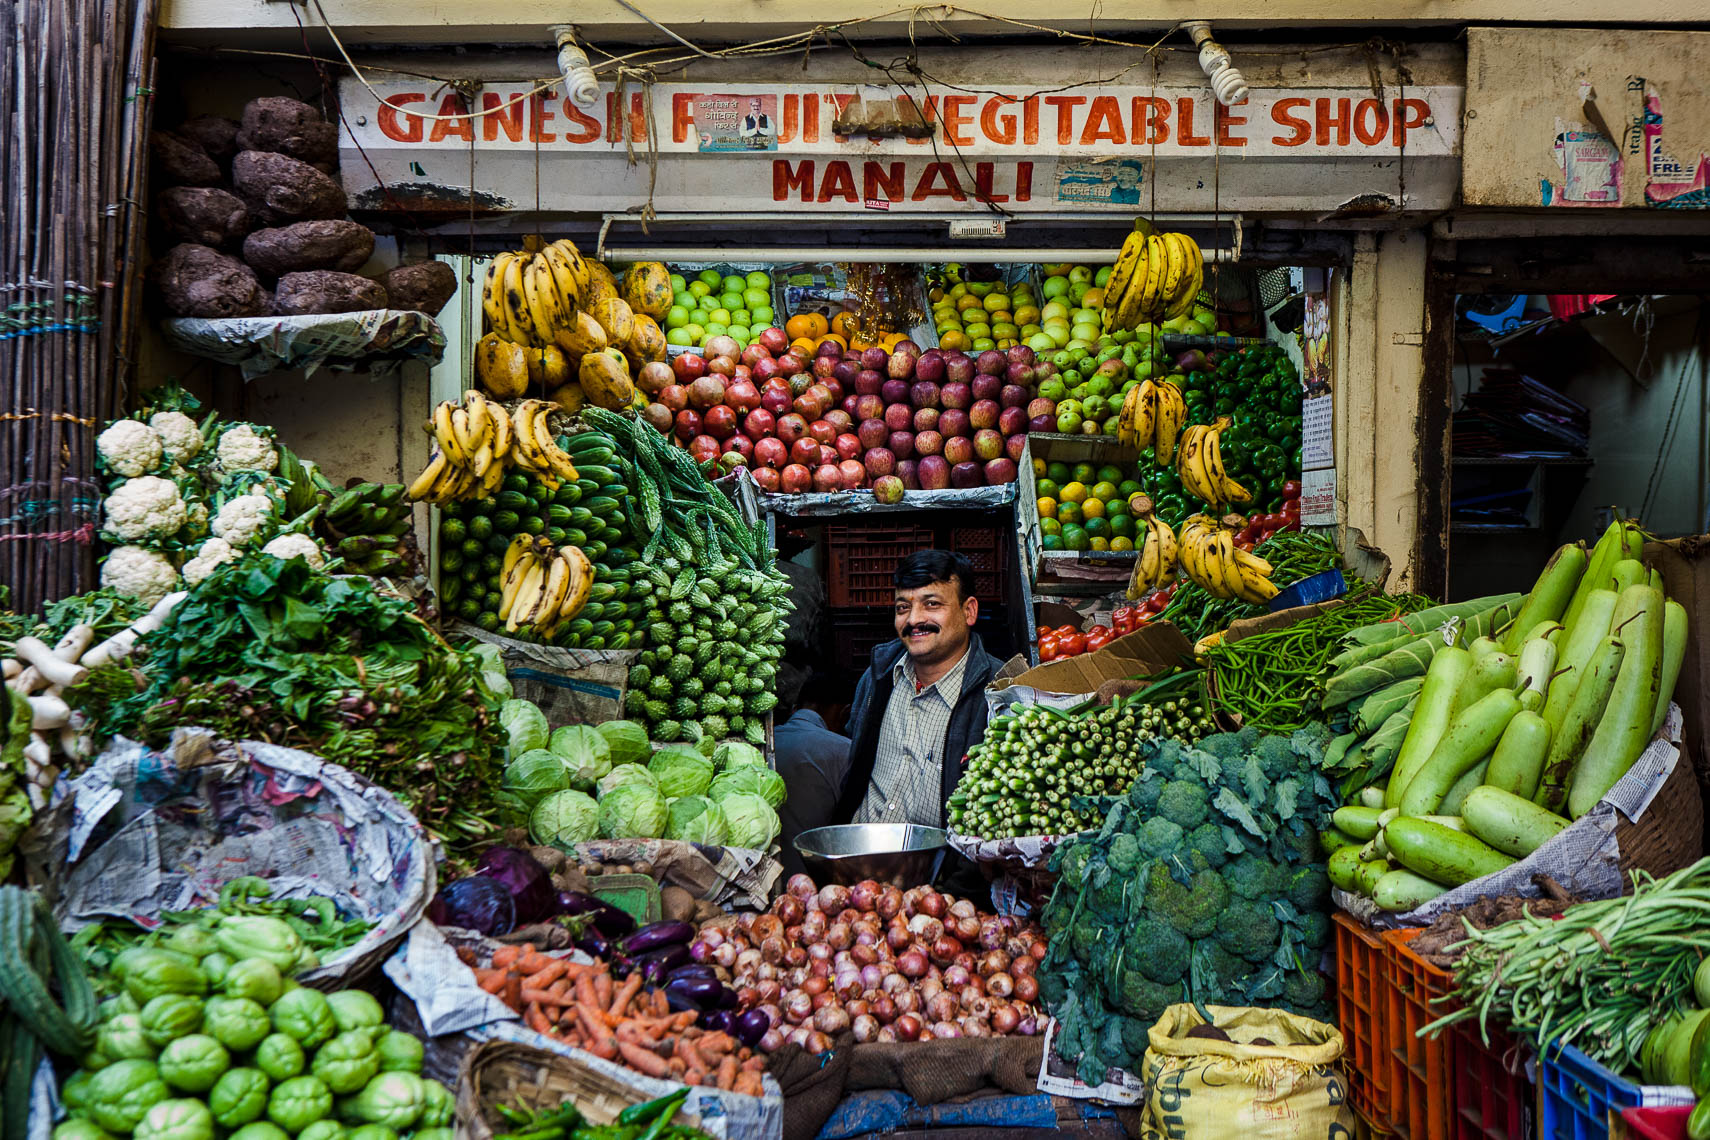 Ganesh Vegetable Shop, Manali, India